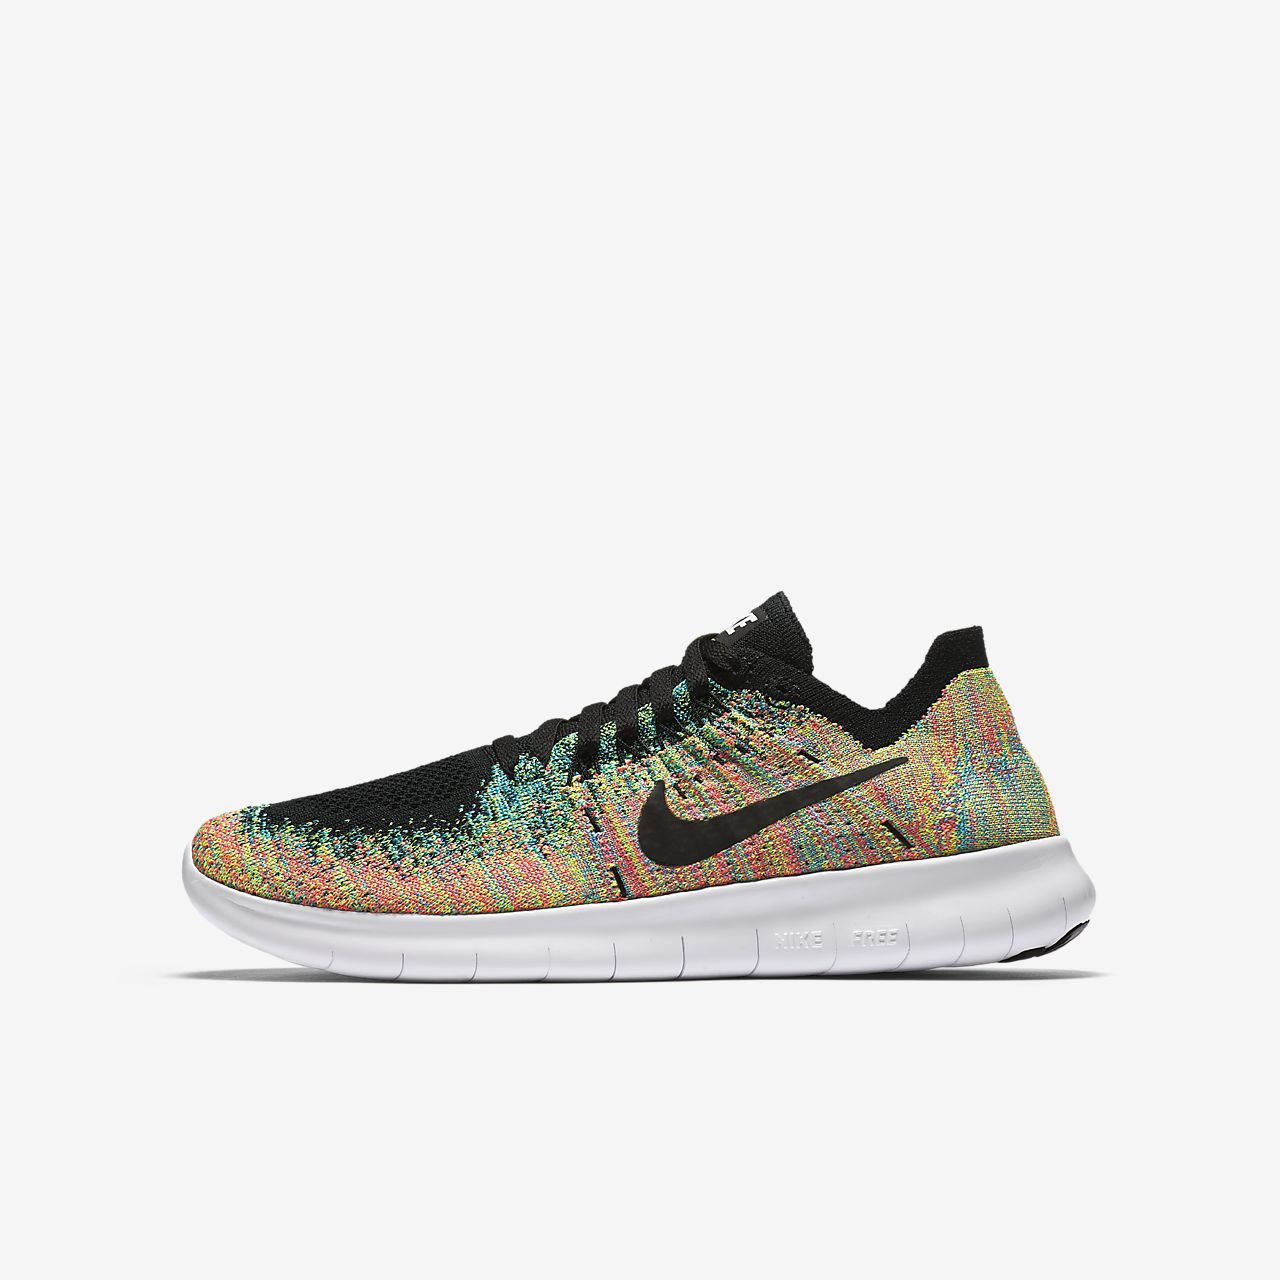 chaussures nike free flyknit rn, ... Chaussure de running Nike Free RN Flyknit 2017 pour Enfant plus âgé